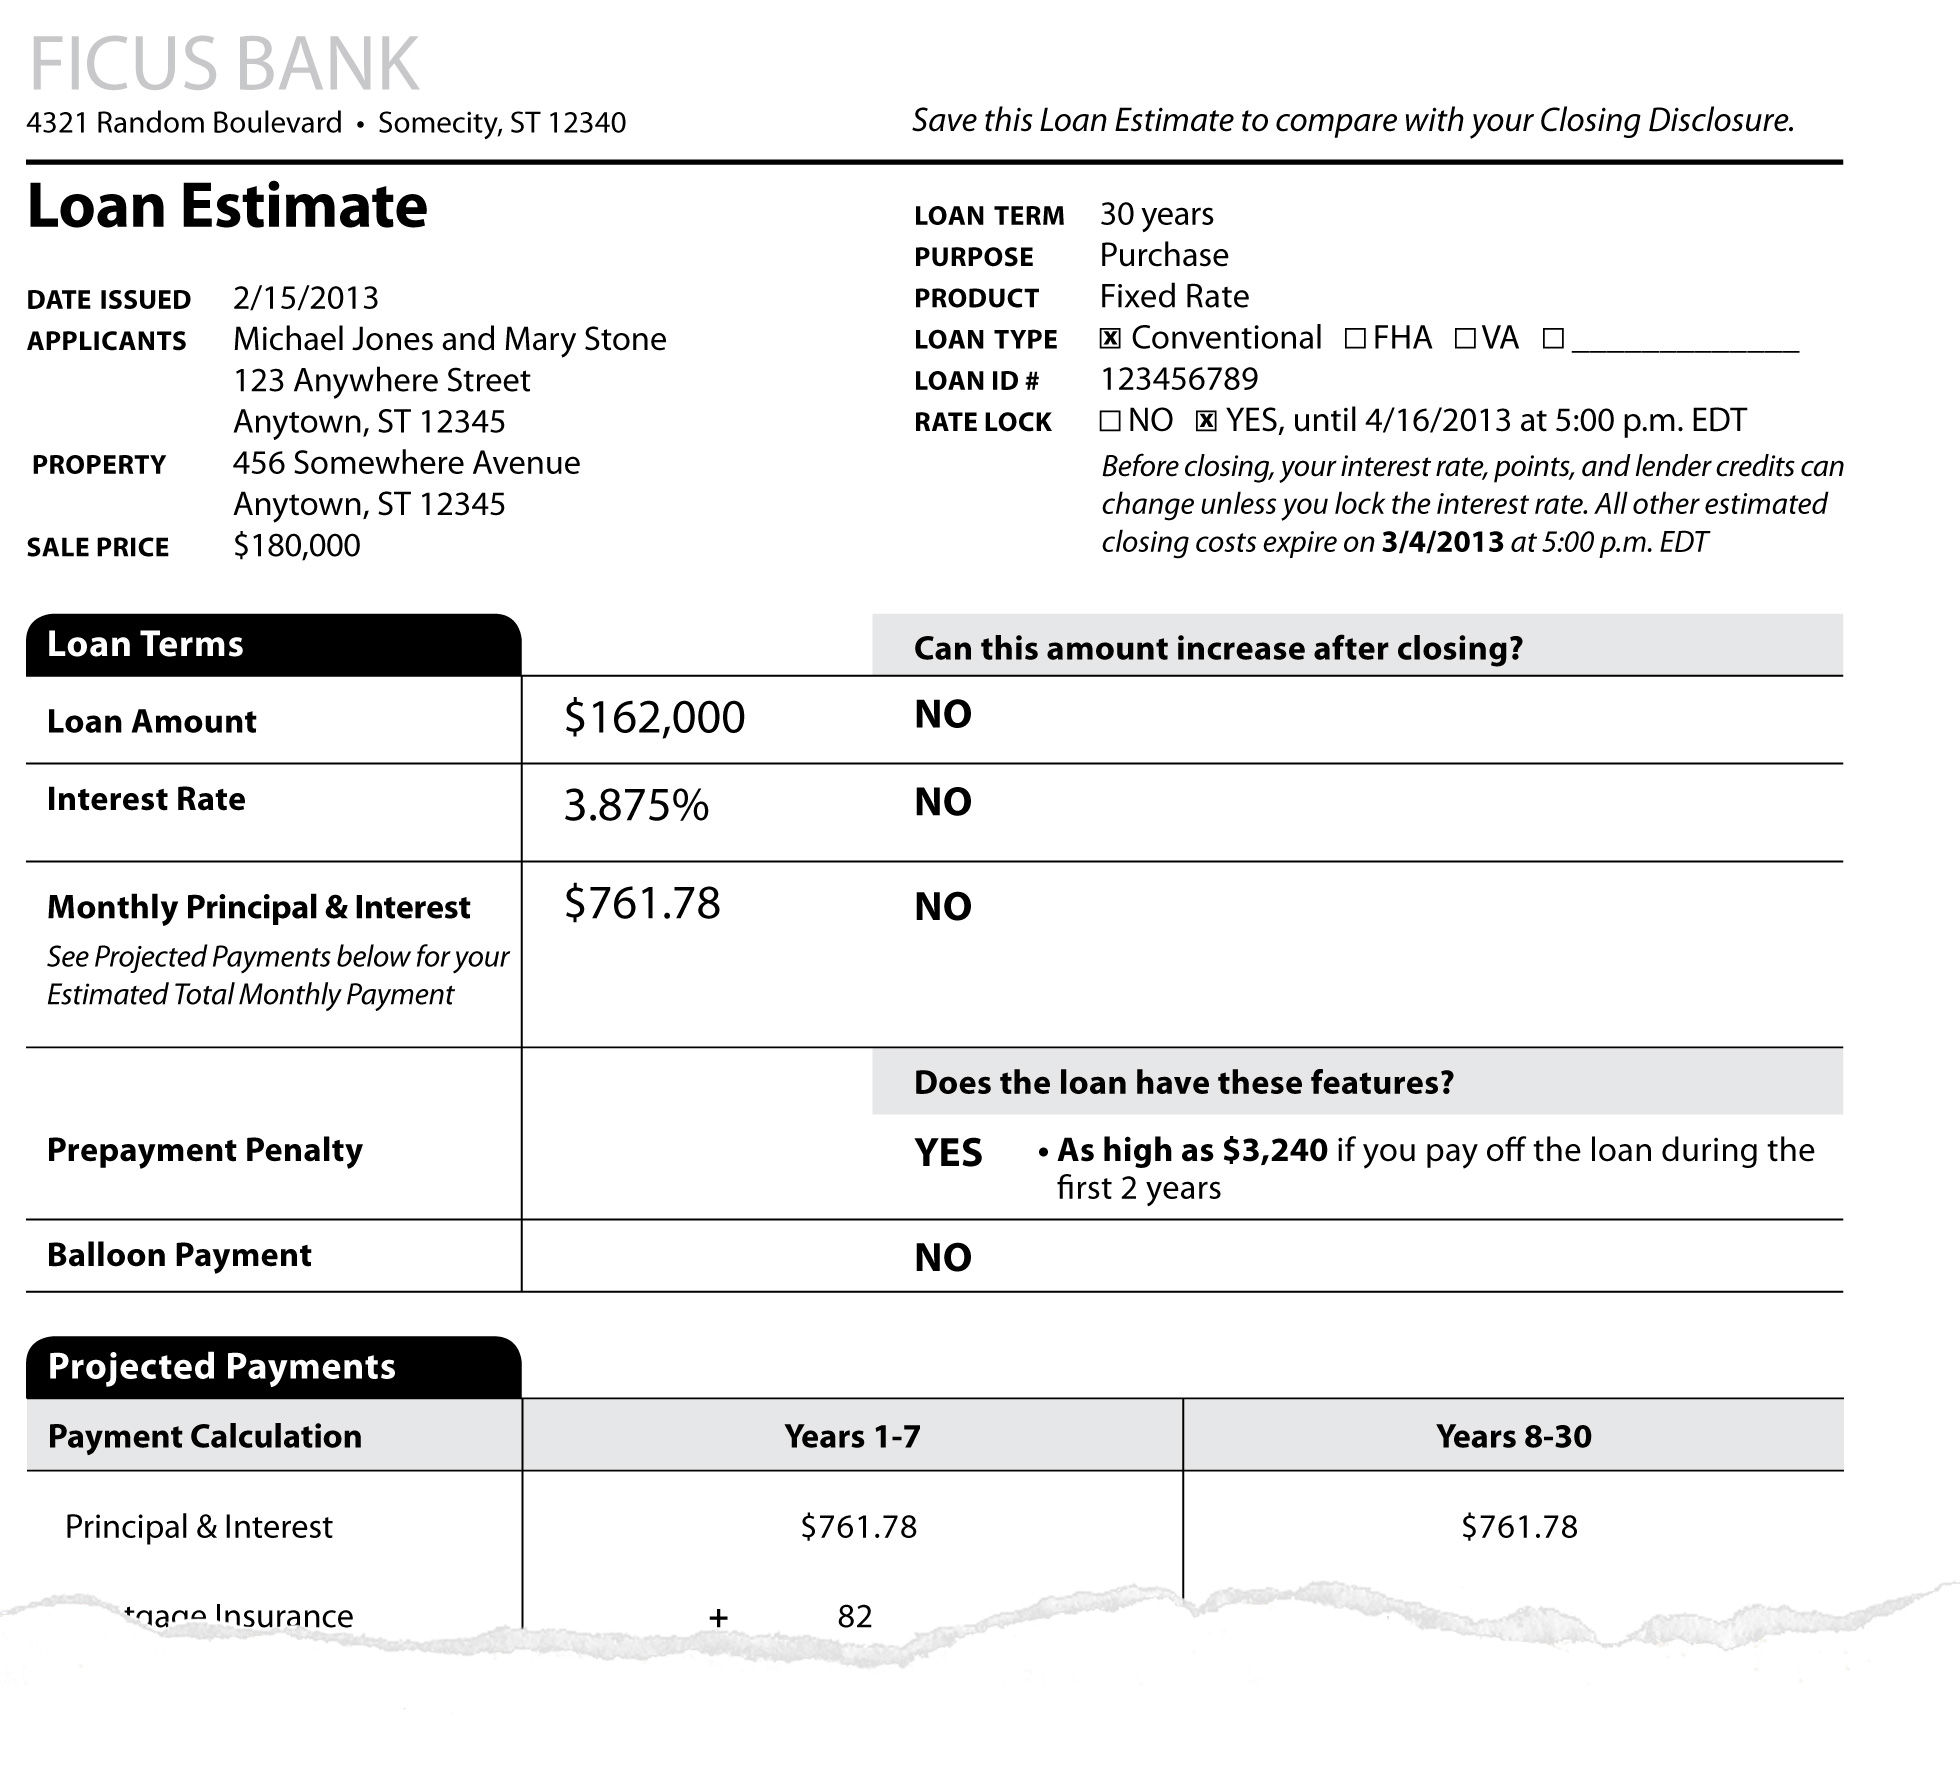 Sample loan estimate paperwork